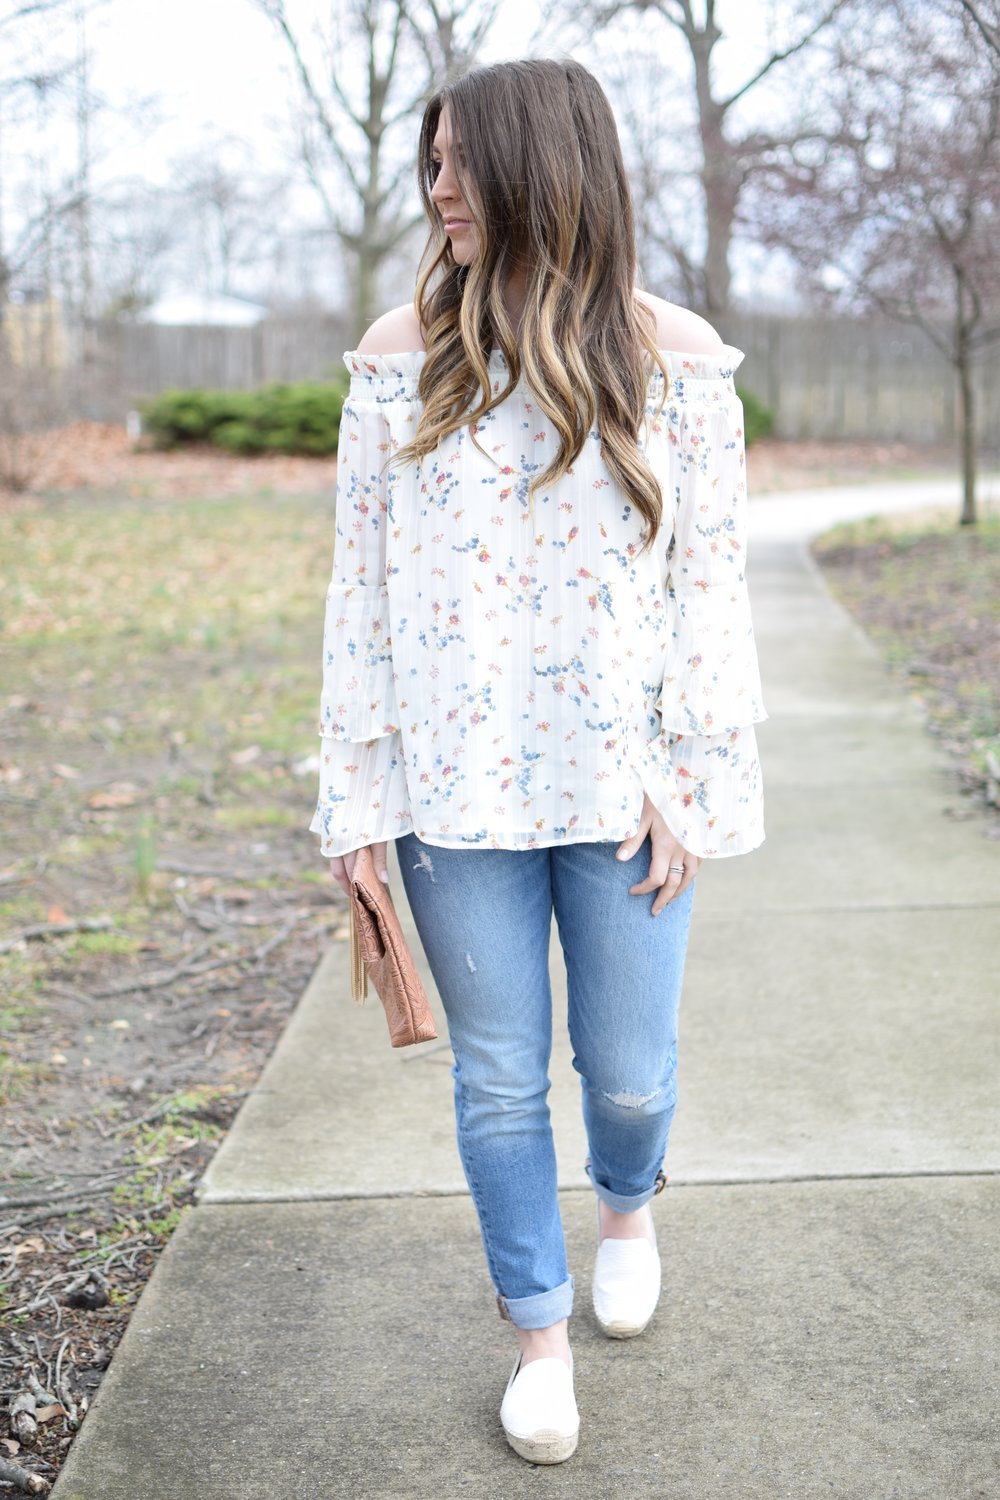 spring outfit idea / floral print top / distressed denim